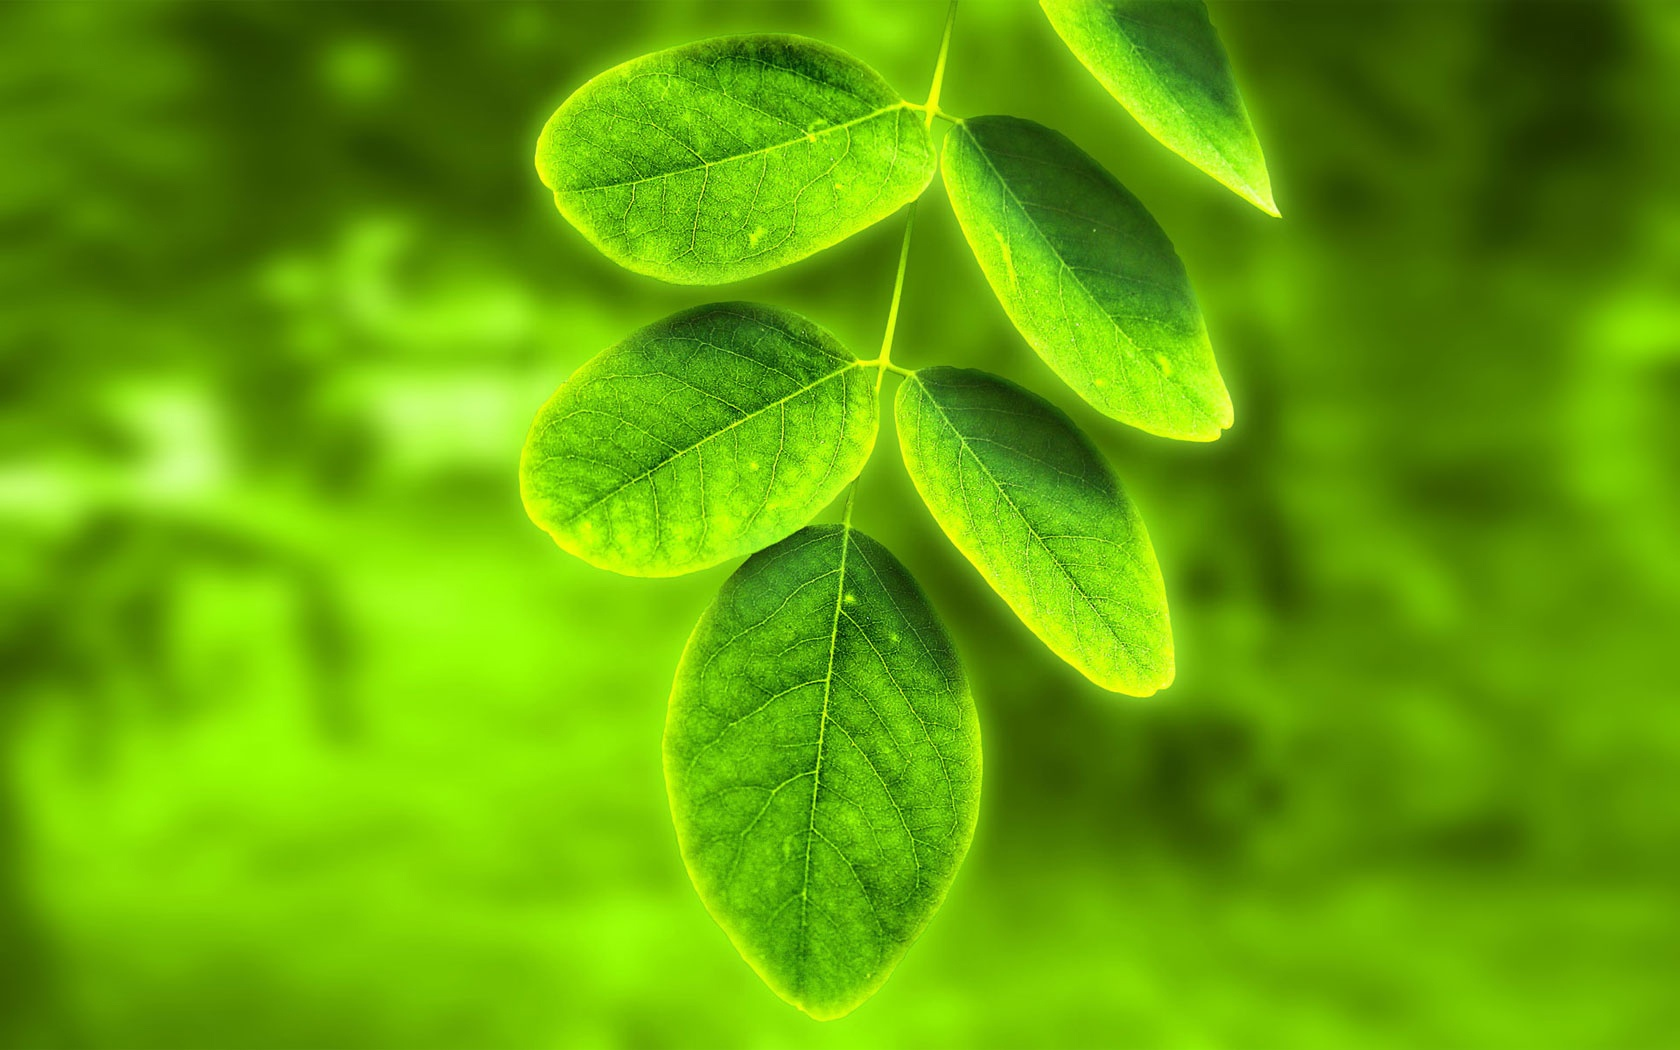 nature green leaf backgrounds wallpapersjpg 1680x1050